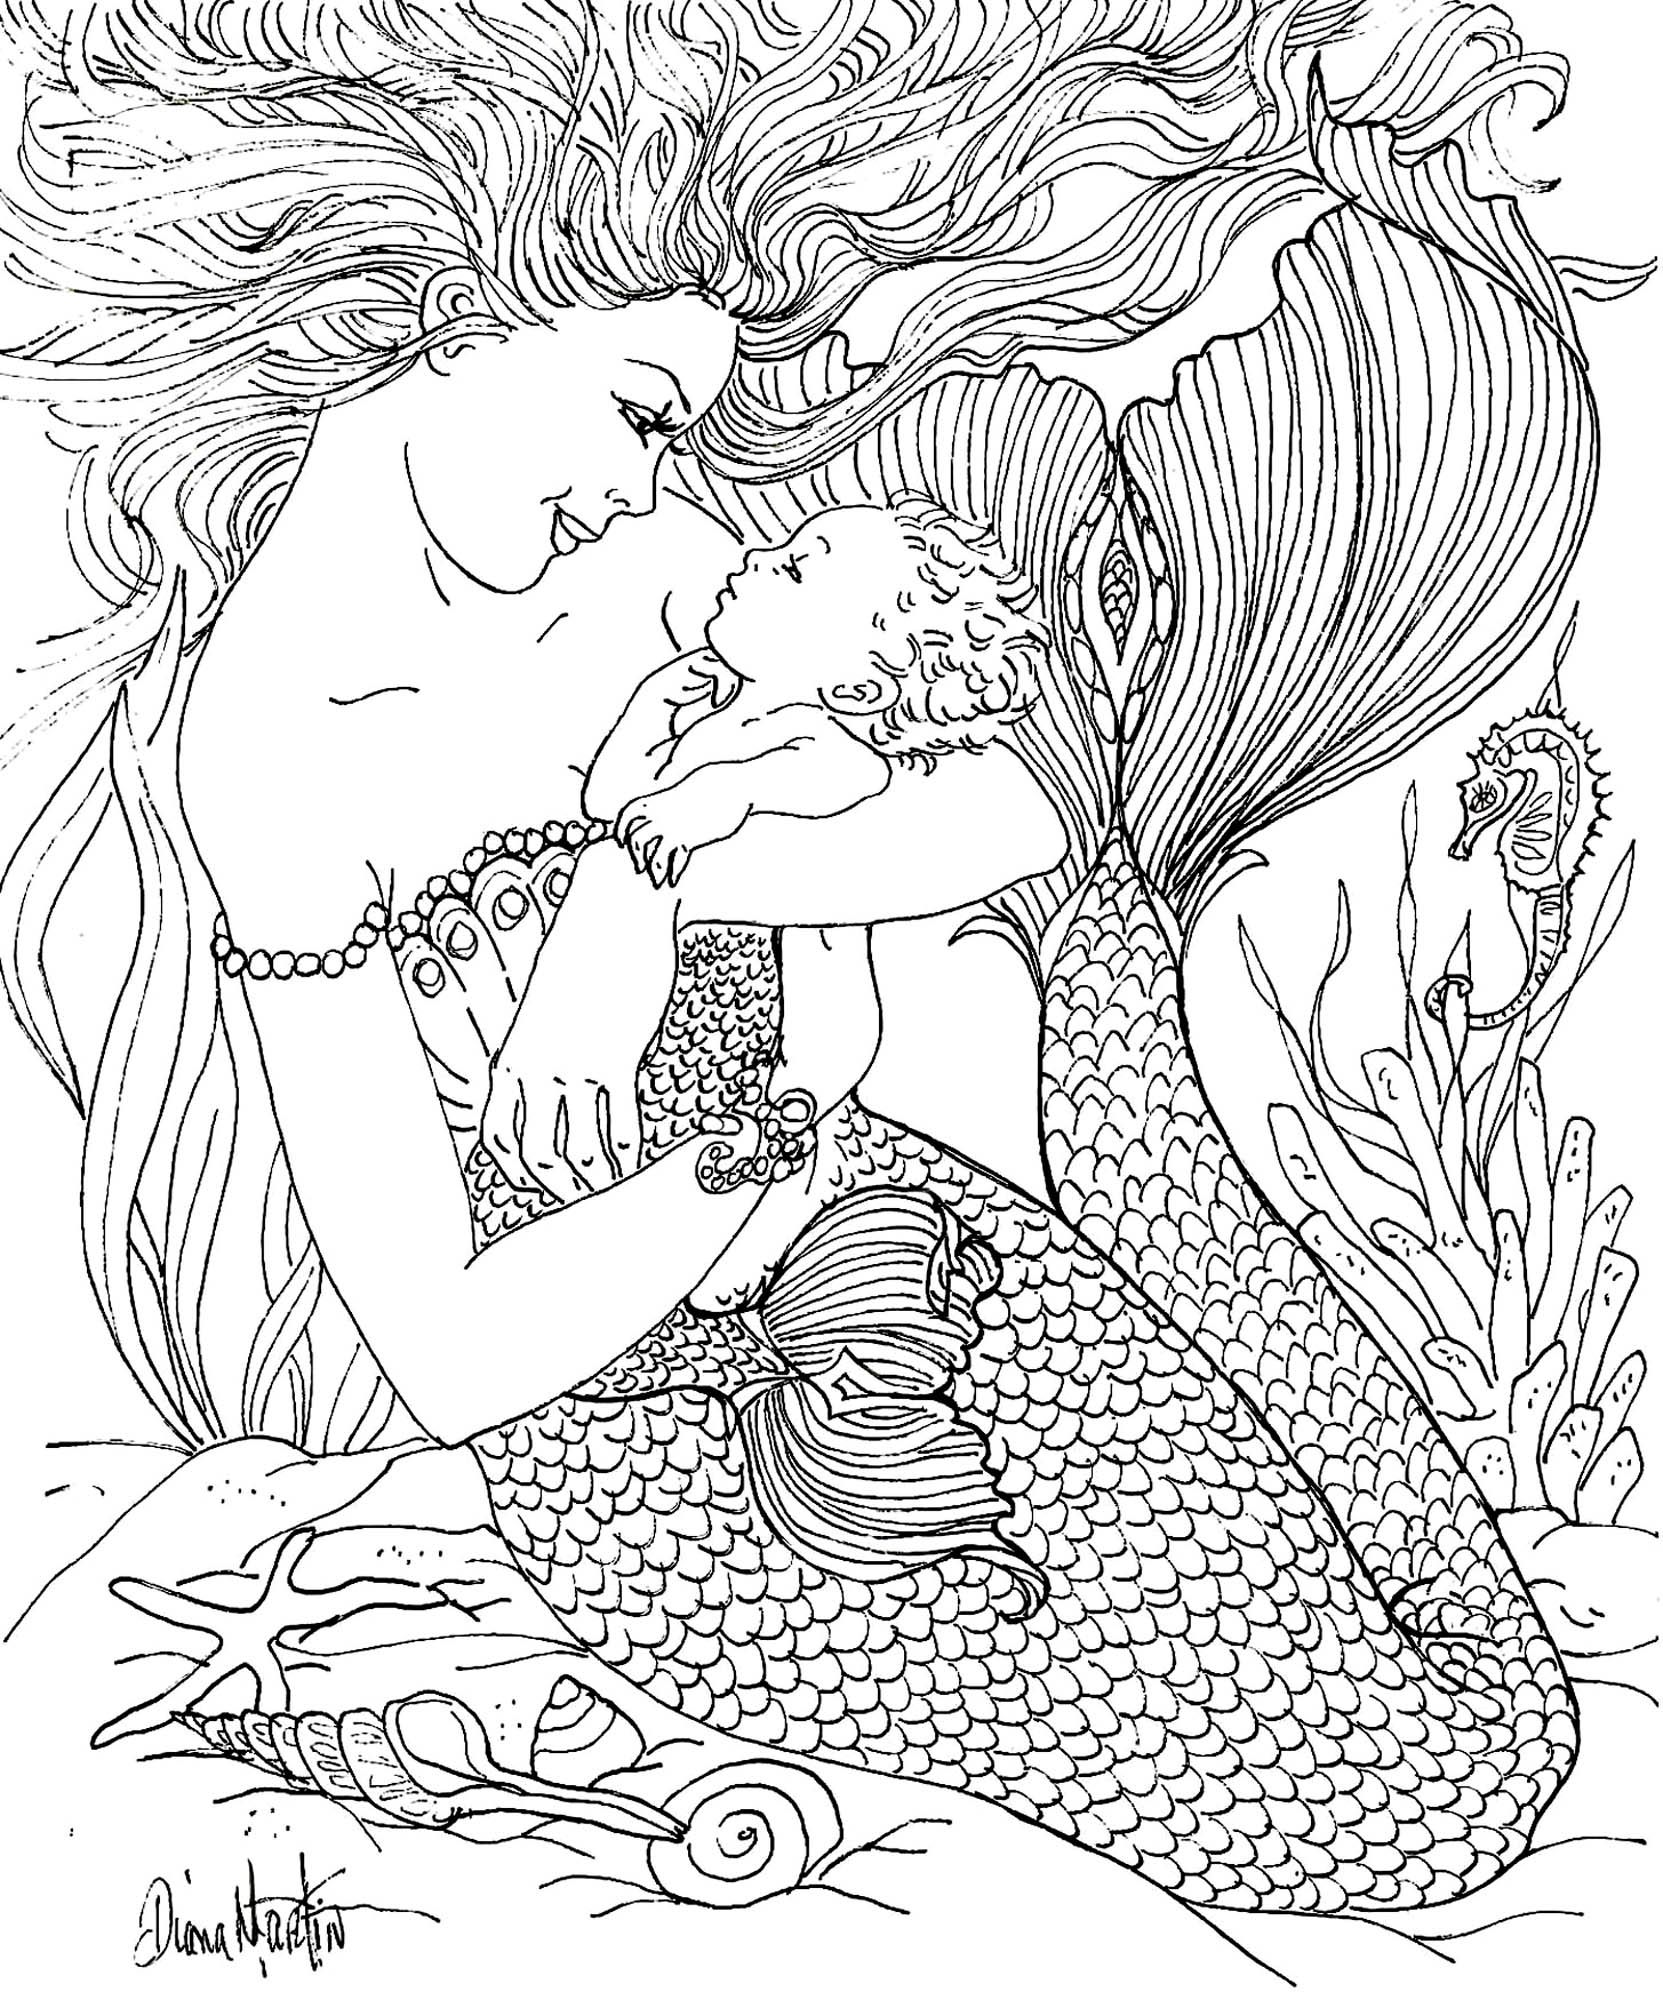 Mermaid coloring pages for adults - Mermaid By Diana Martin Coloring Book